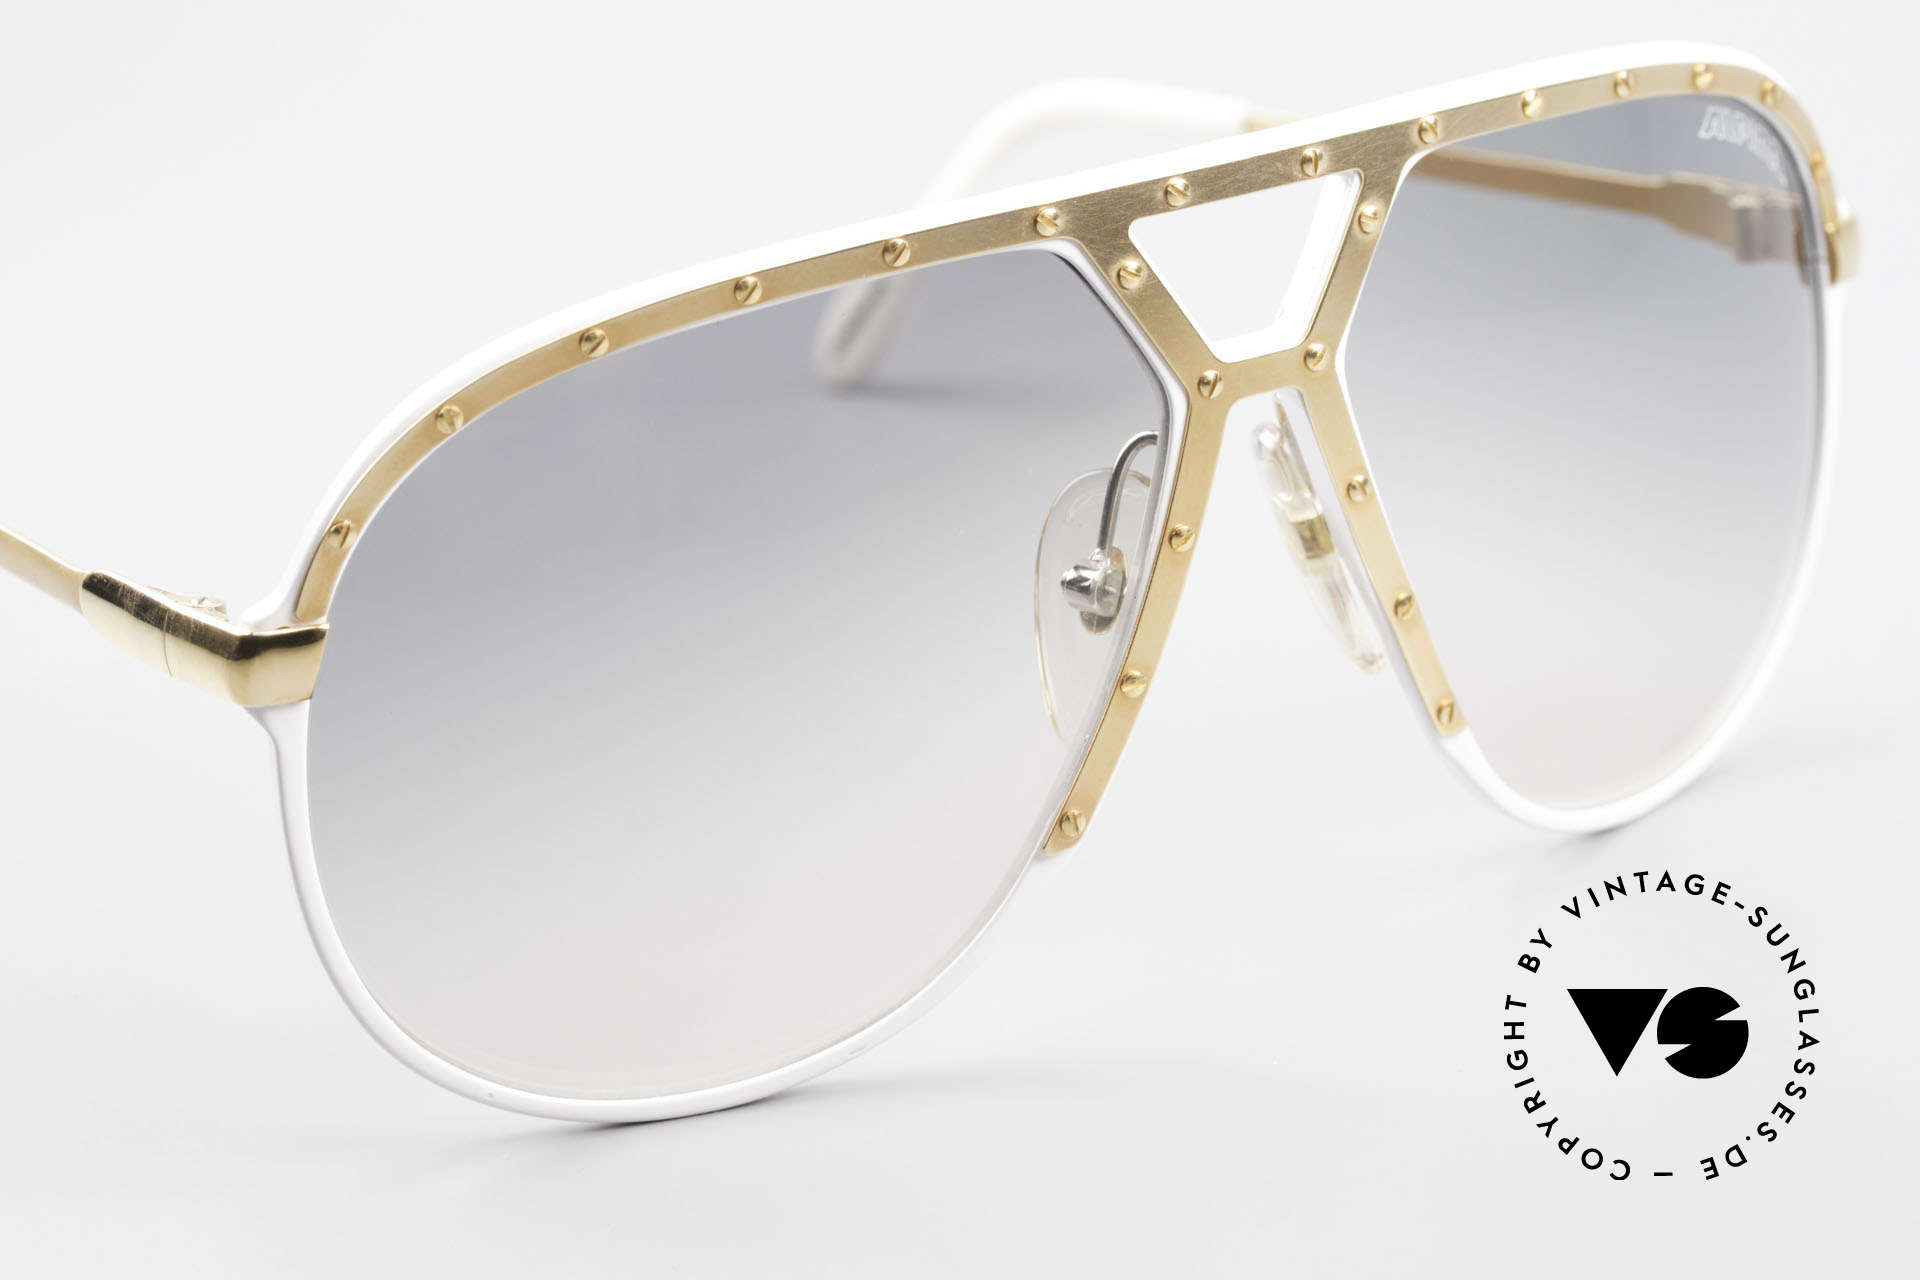 Alpina M1 Stevie Wonder Iconic Shades, handmade (West Germany) in LARGE size 64-14, Made for Men